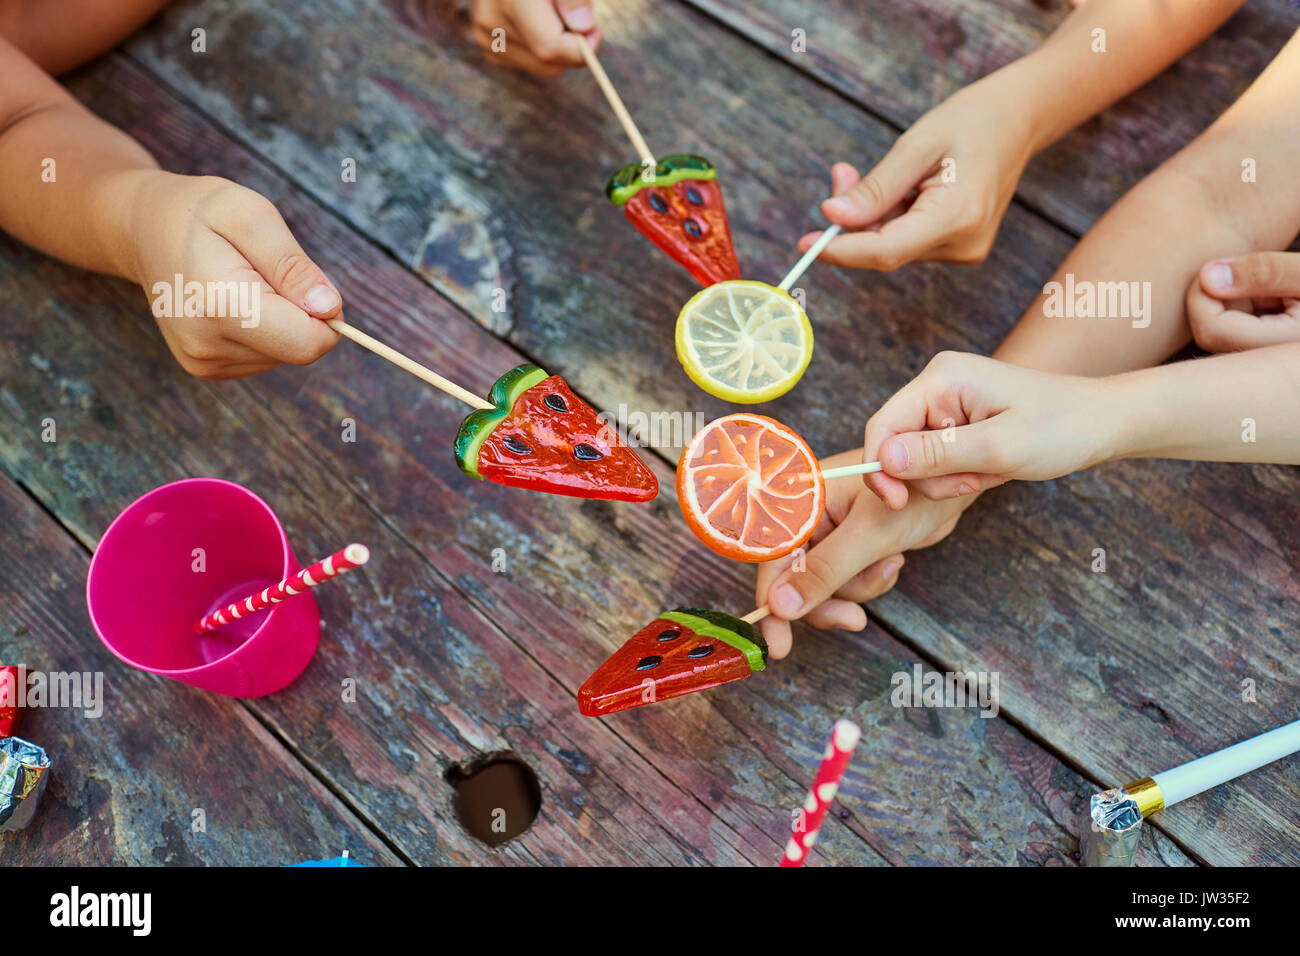 Hands of children with sweets on a wooden  background. - Stock Image